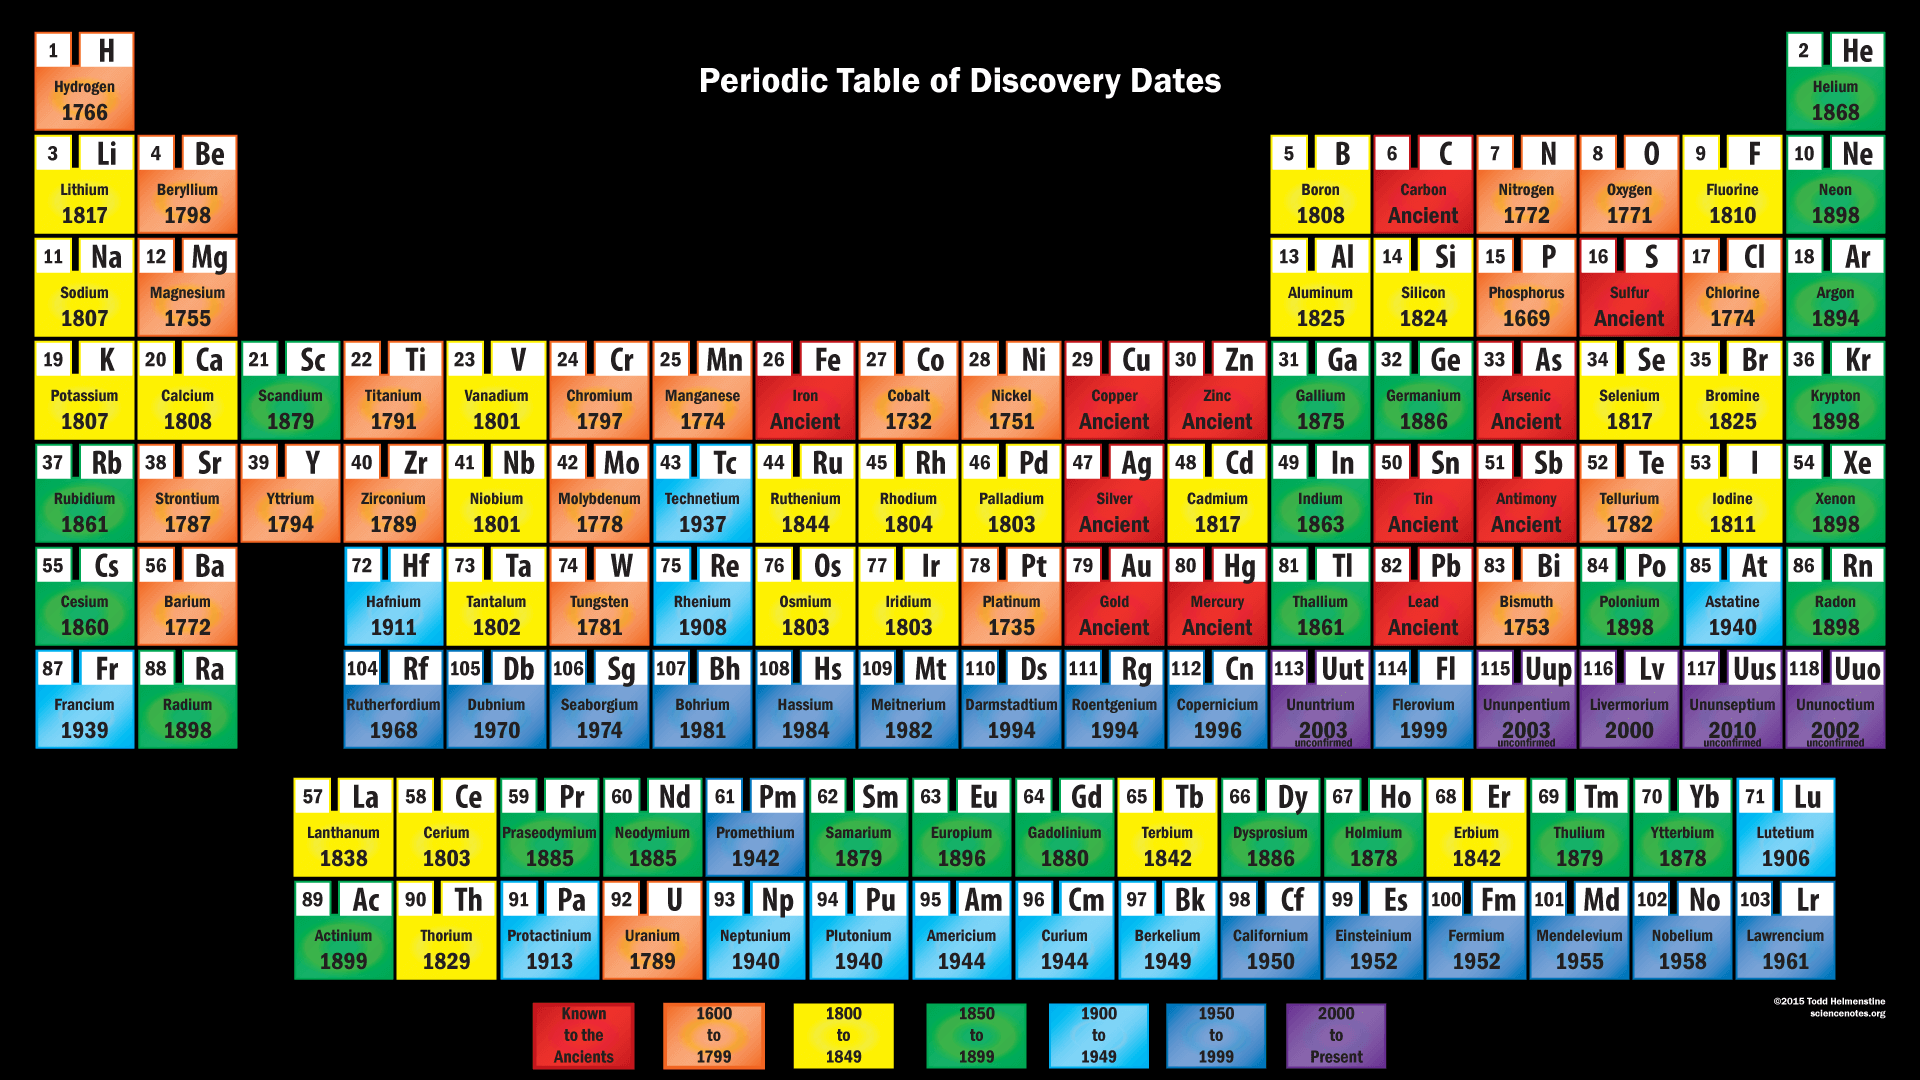 Printable periodic tables for chemistry science notes and projects element discovery periodic table urtaz Image collections